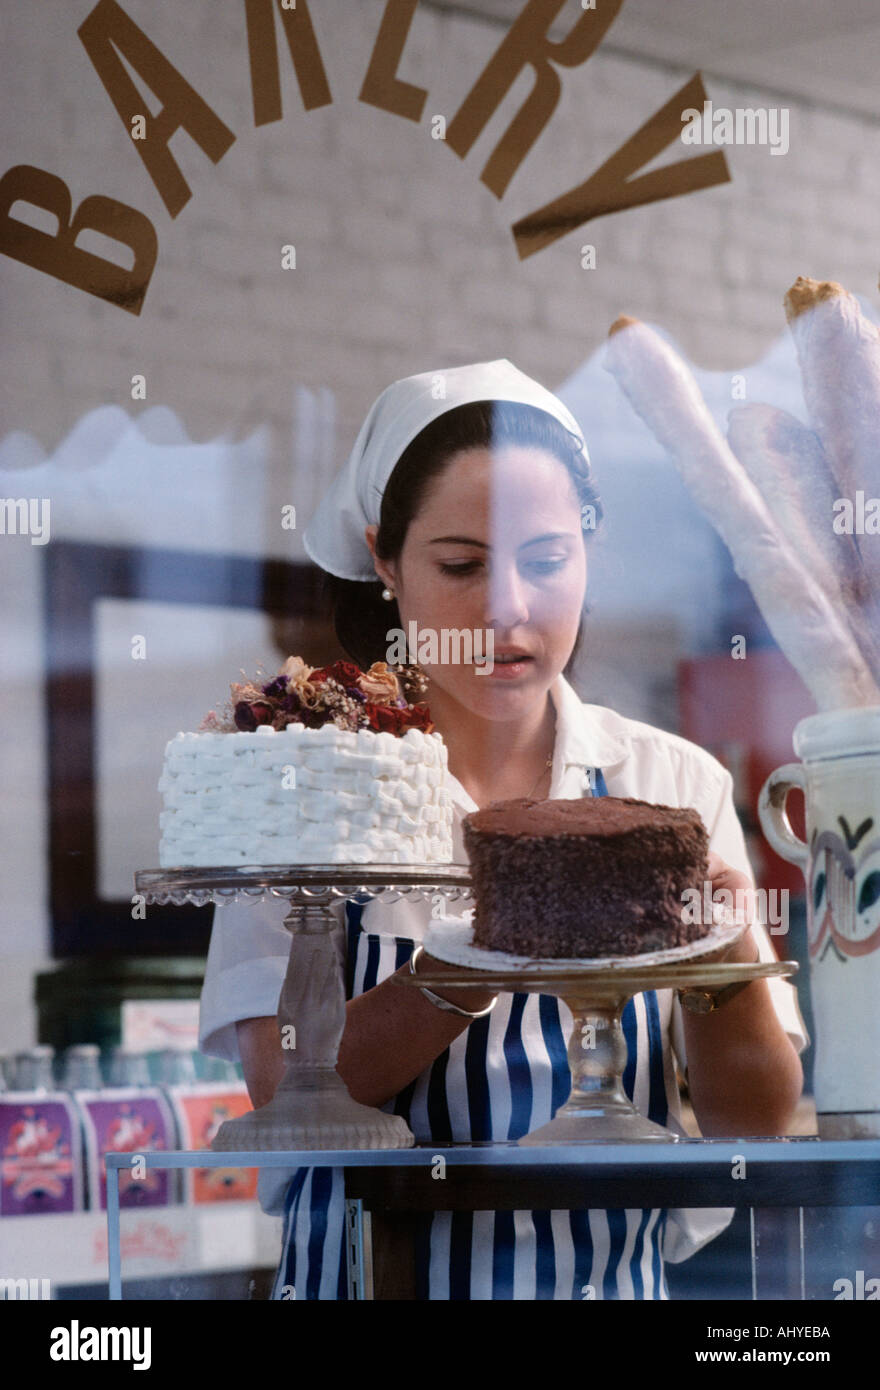 Caucasian Small business owner placing baked goods in retail store window - Stock Image